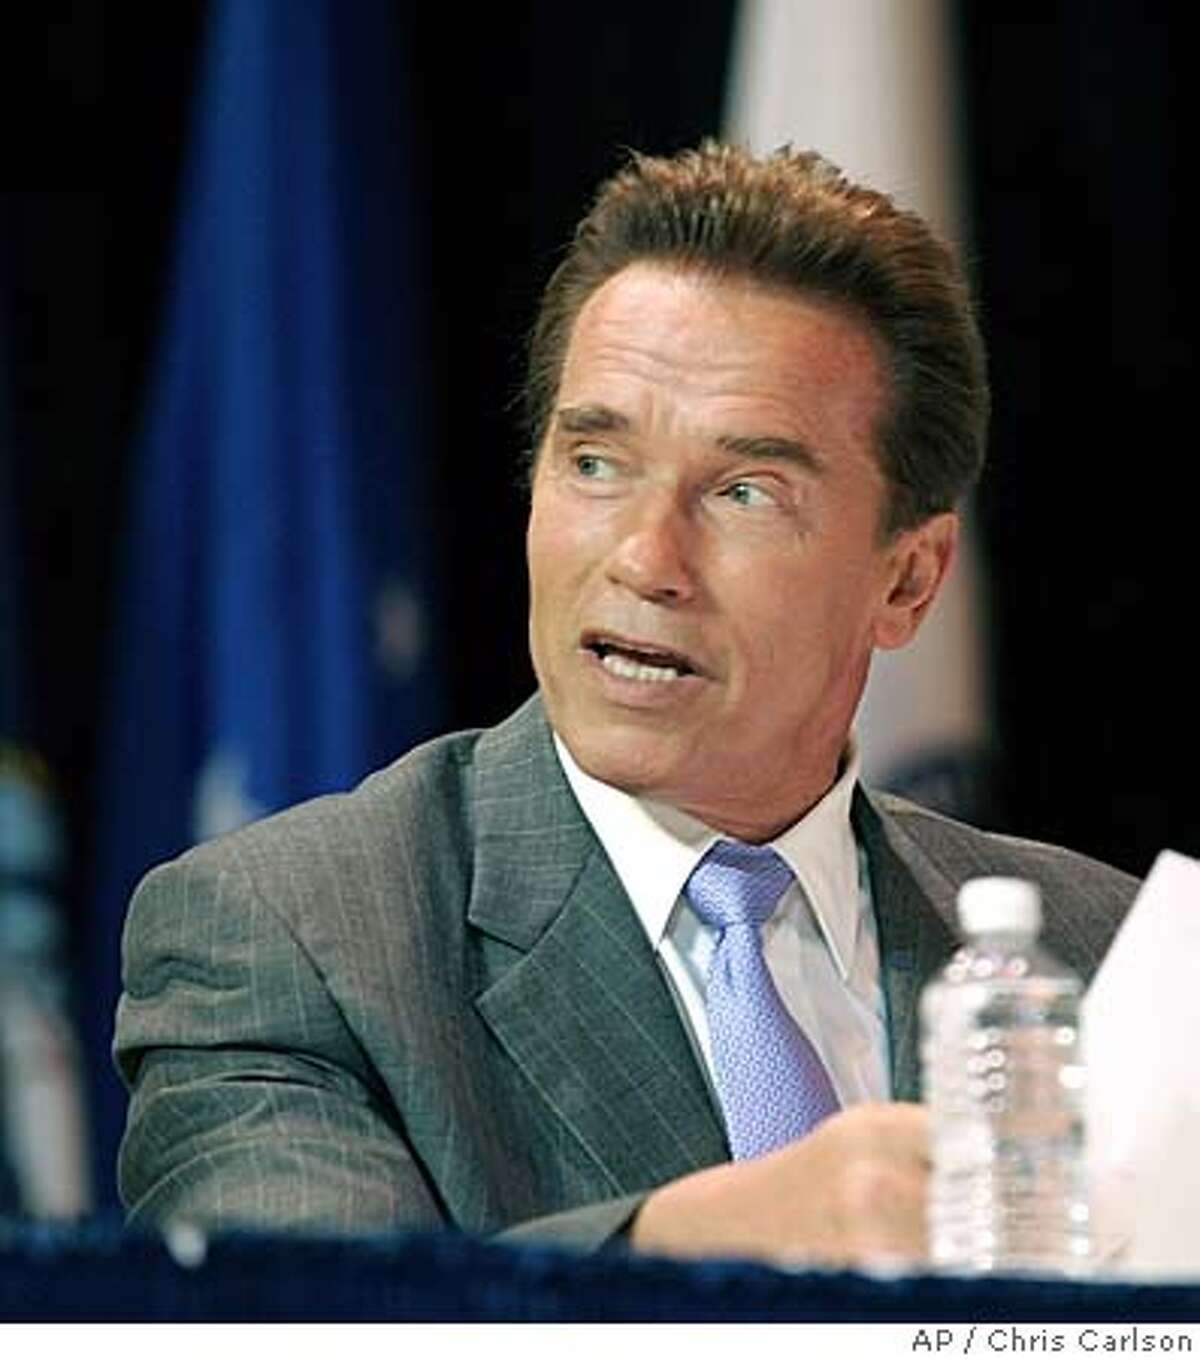 California Gov. Arnold Schwarzenegger testifies in support of California's bases before the Base Realignment and Closure Commission, Thursday, July 14, 2005, in Los Angeles. (AP Photo/Chris Carlson)